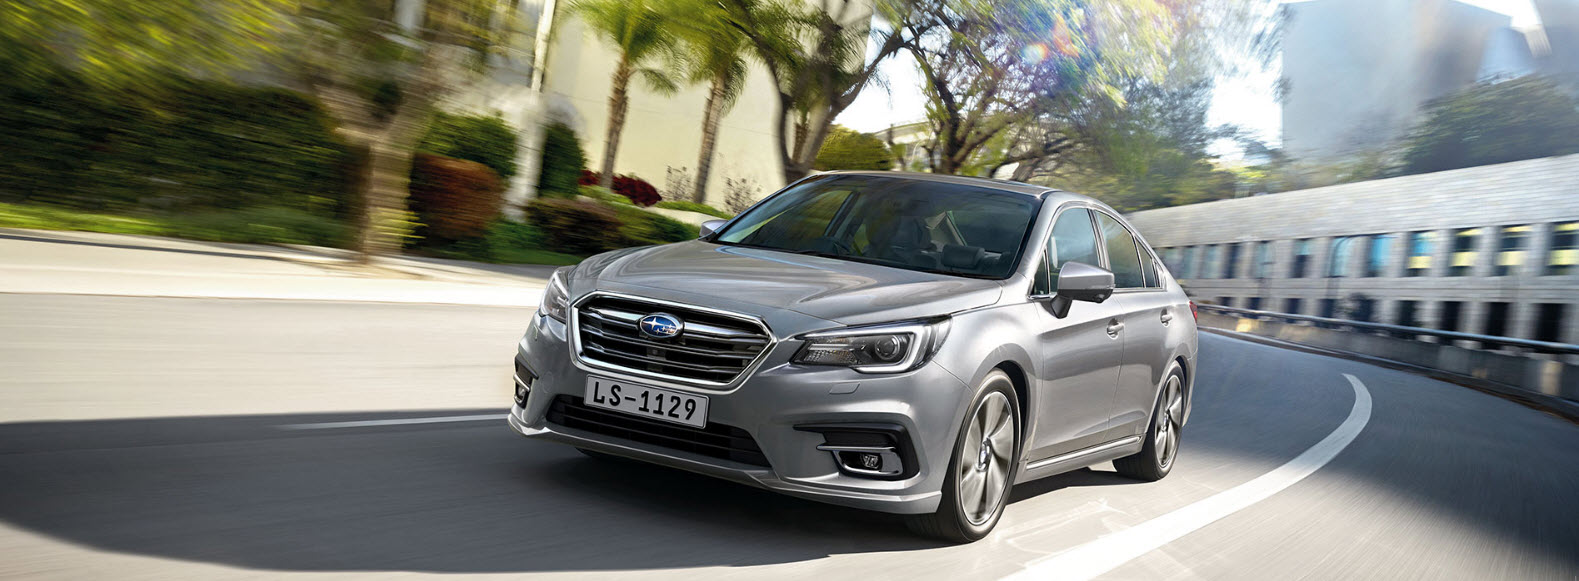 Subaru Somerset West New Legacy Fuel Filter Location At The End Of Each Day Helps You Find Confidence And Motivation To Boldly Face Challenges Tomorrow